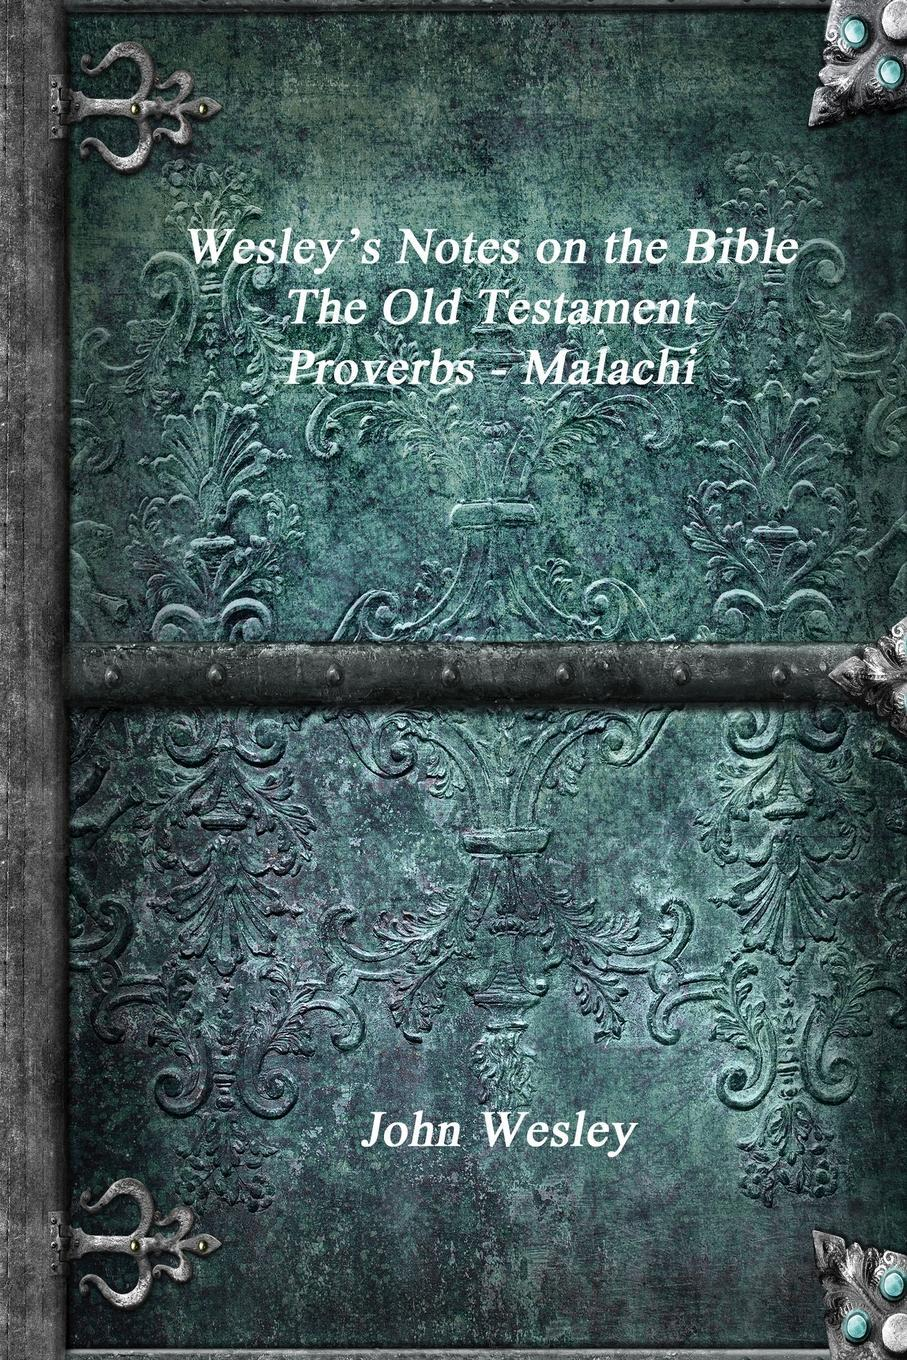 Wesley's Notes on the Bible - The Old Testament. Proverbs - Malachi